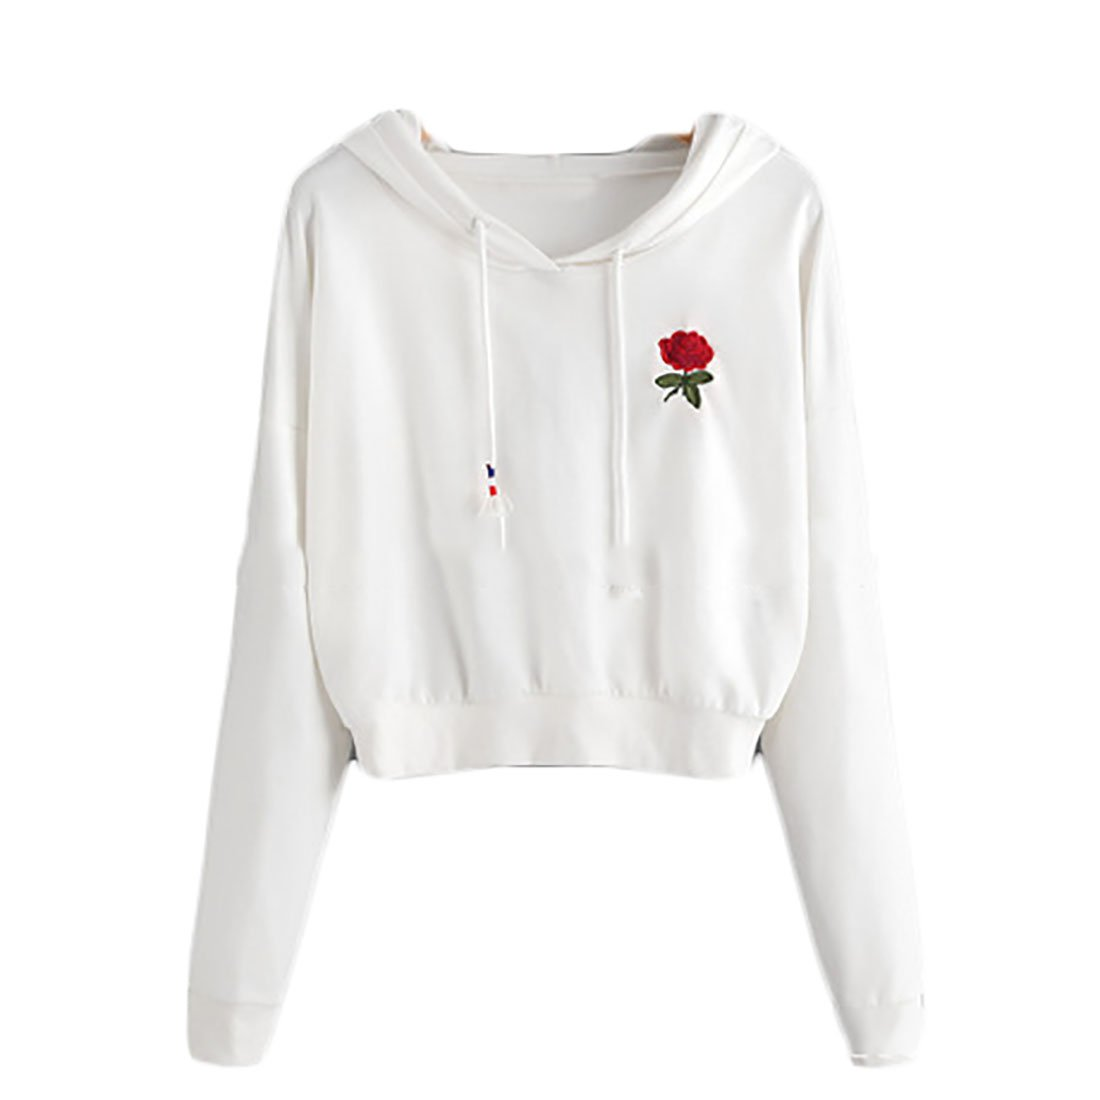 JXG Womens Autumn Embroidery Crop Tops Hoodie Pullover Sweatshirt Outwear White US L